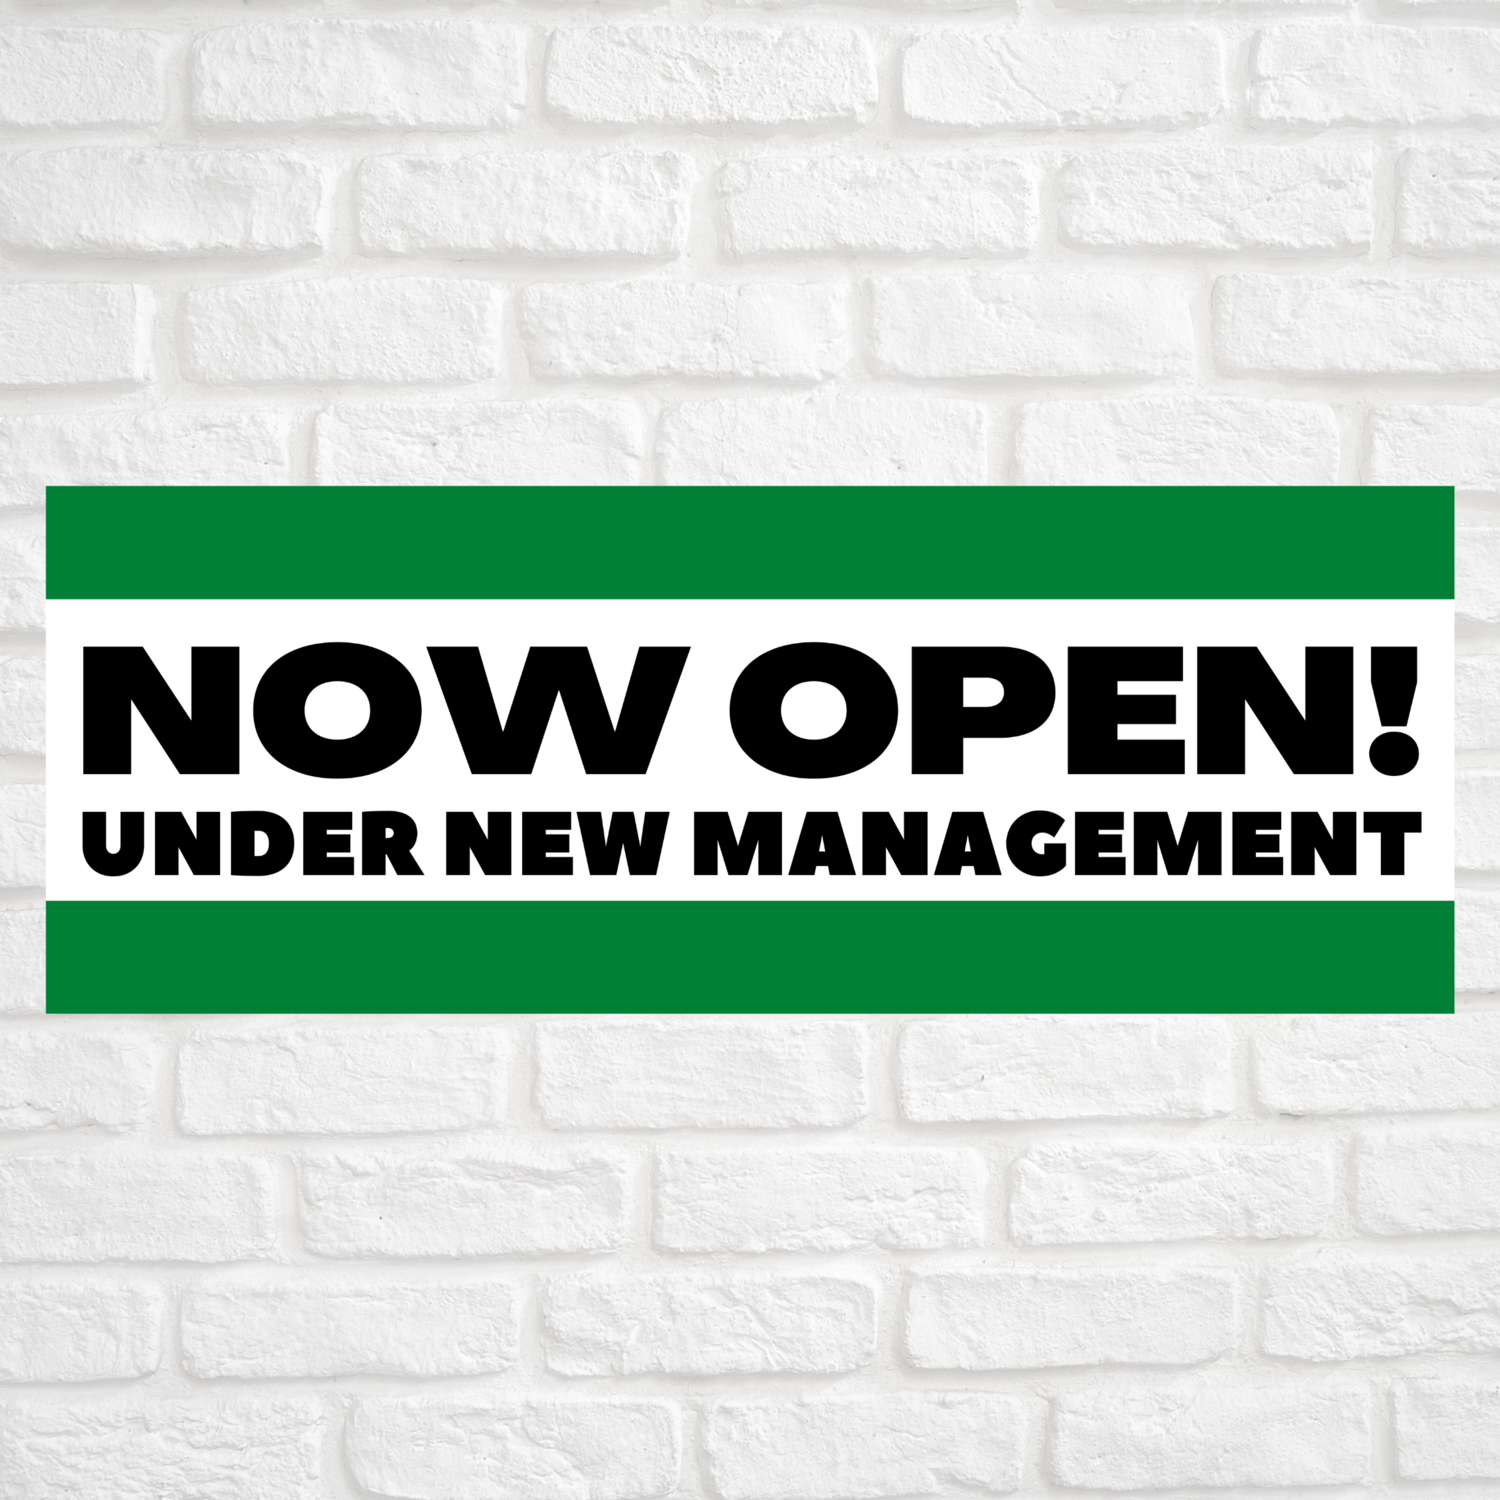 Now Open! Under New Management Green/Green